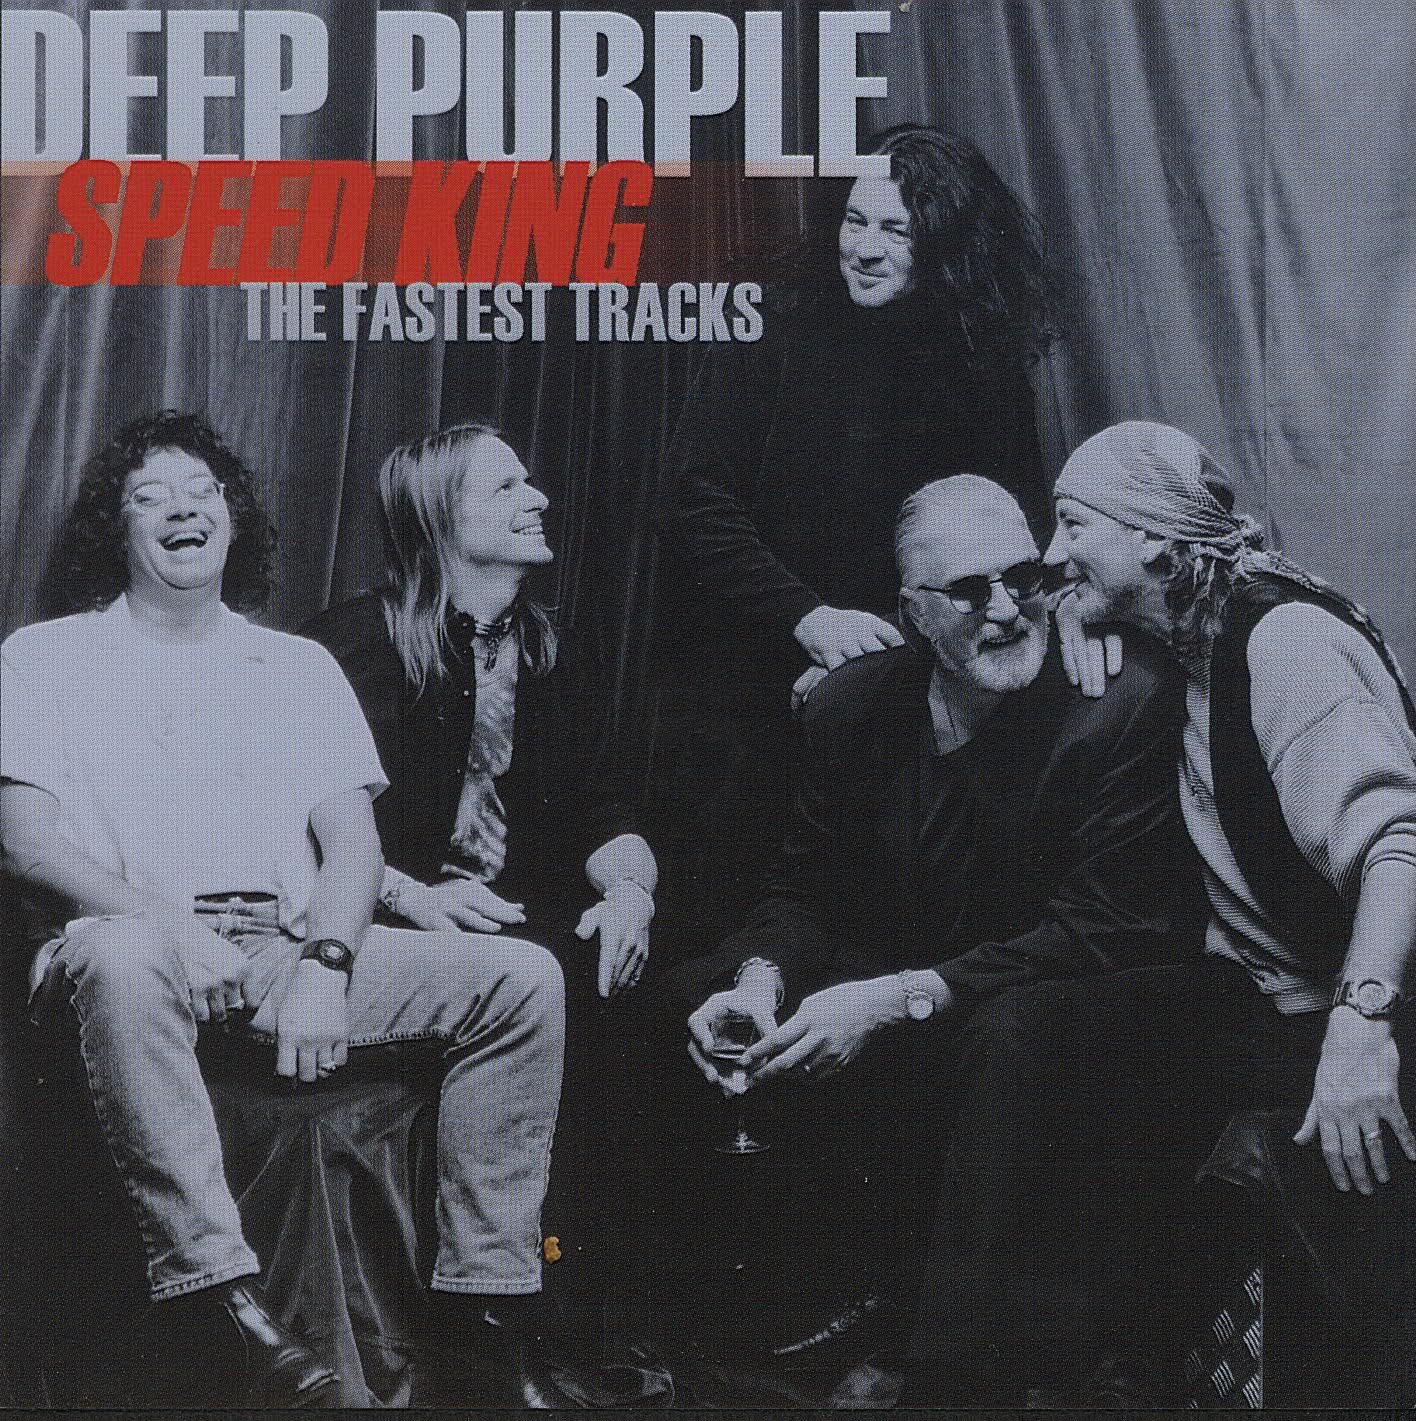 DEEP PURPLE - Speed King: The Fastest Tracks cover